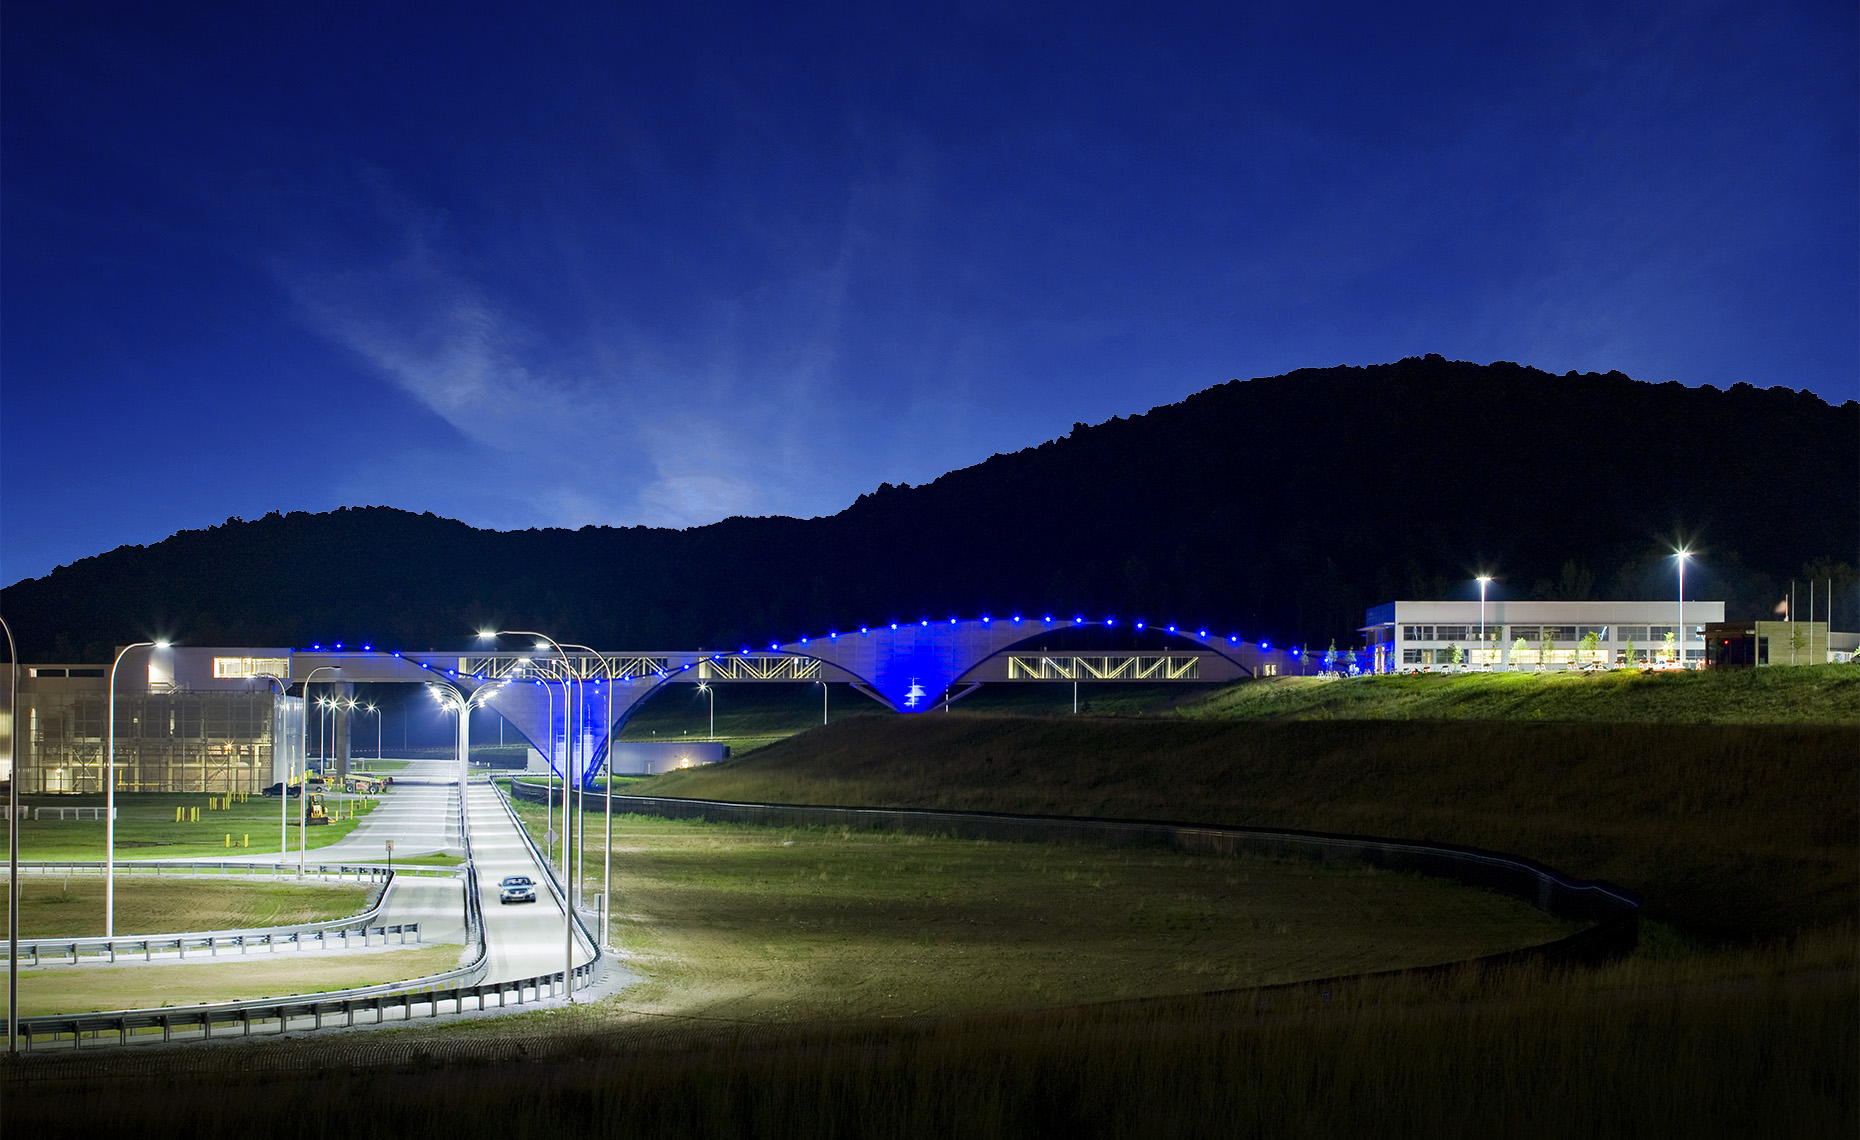 Volkswagen Chattanooga Assembly Plant test track and pedestrian bridge